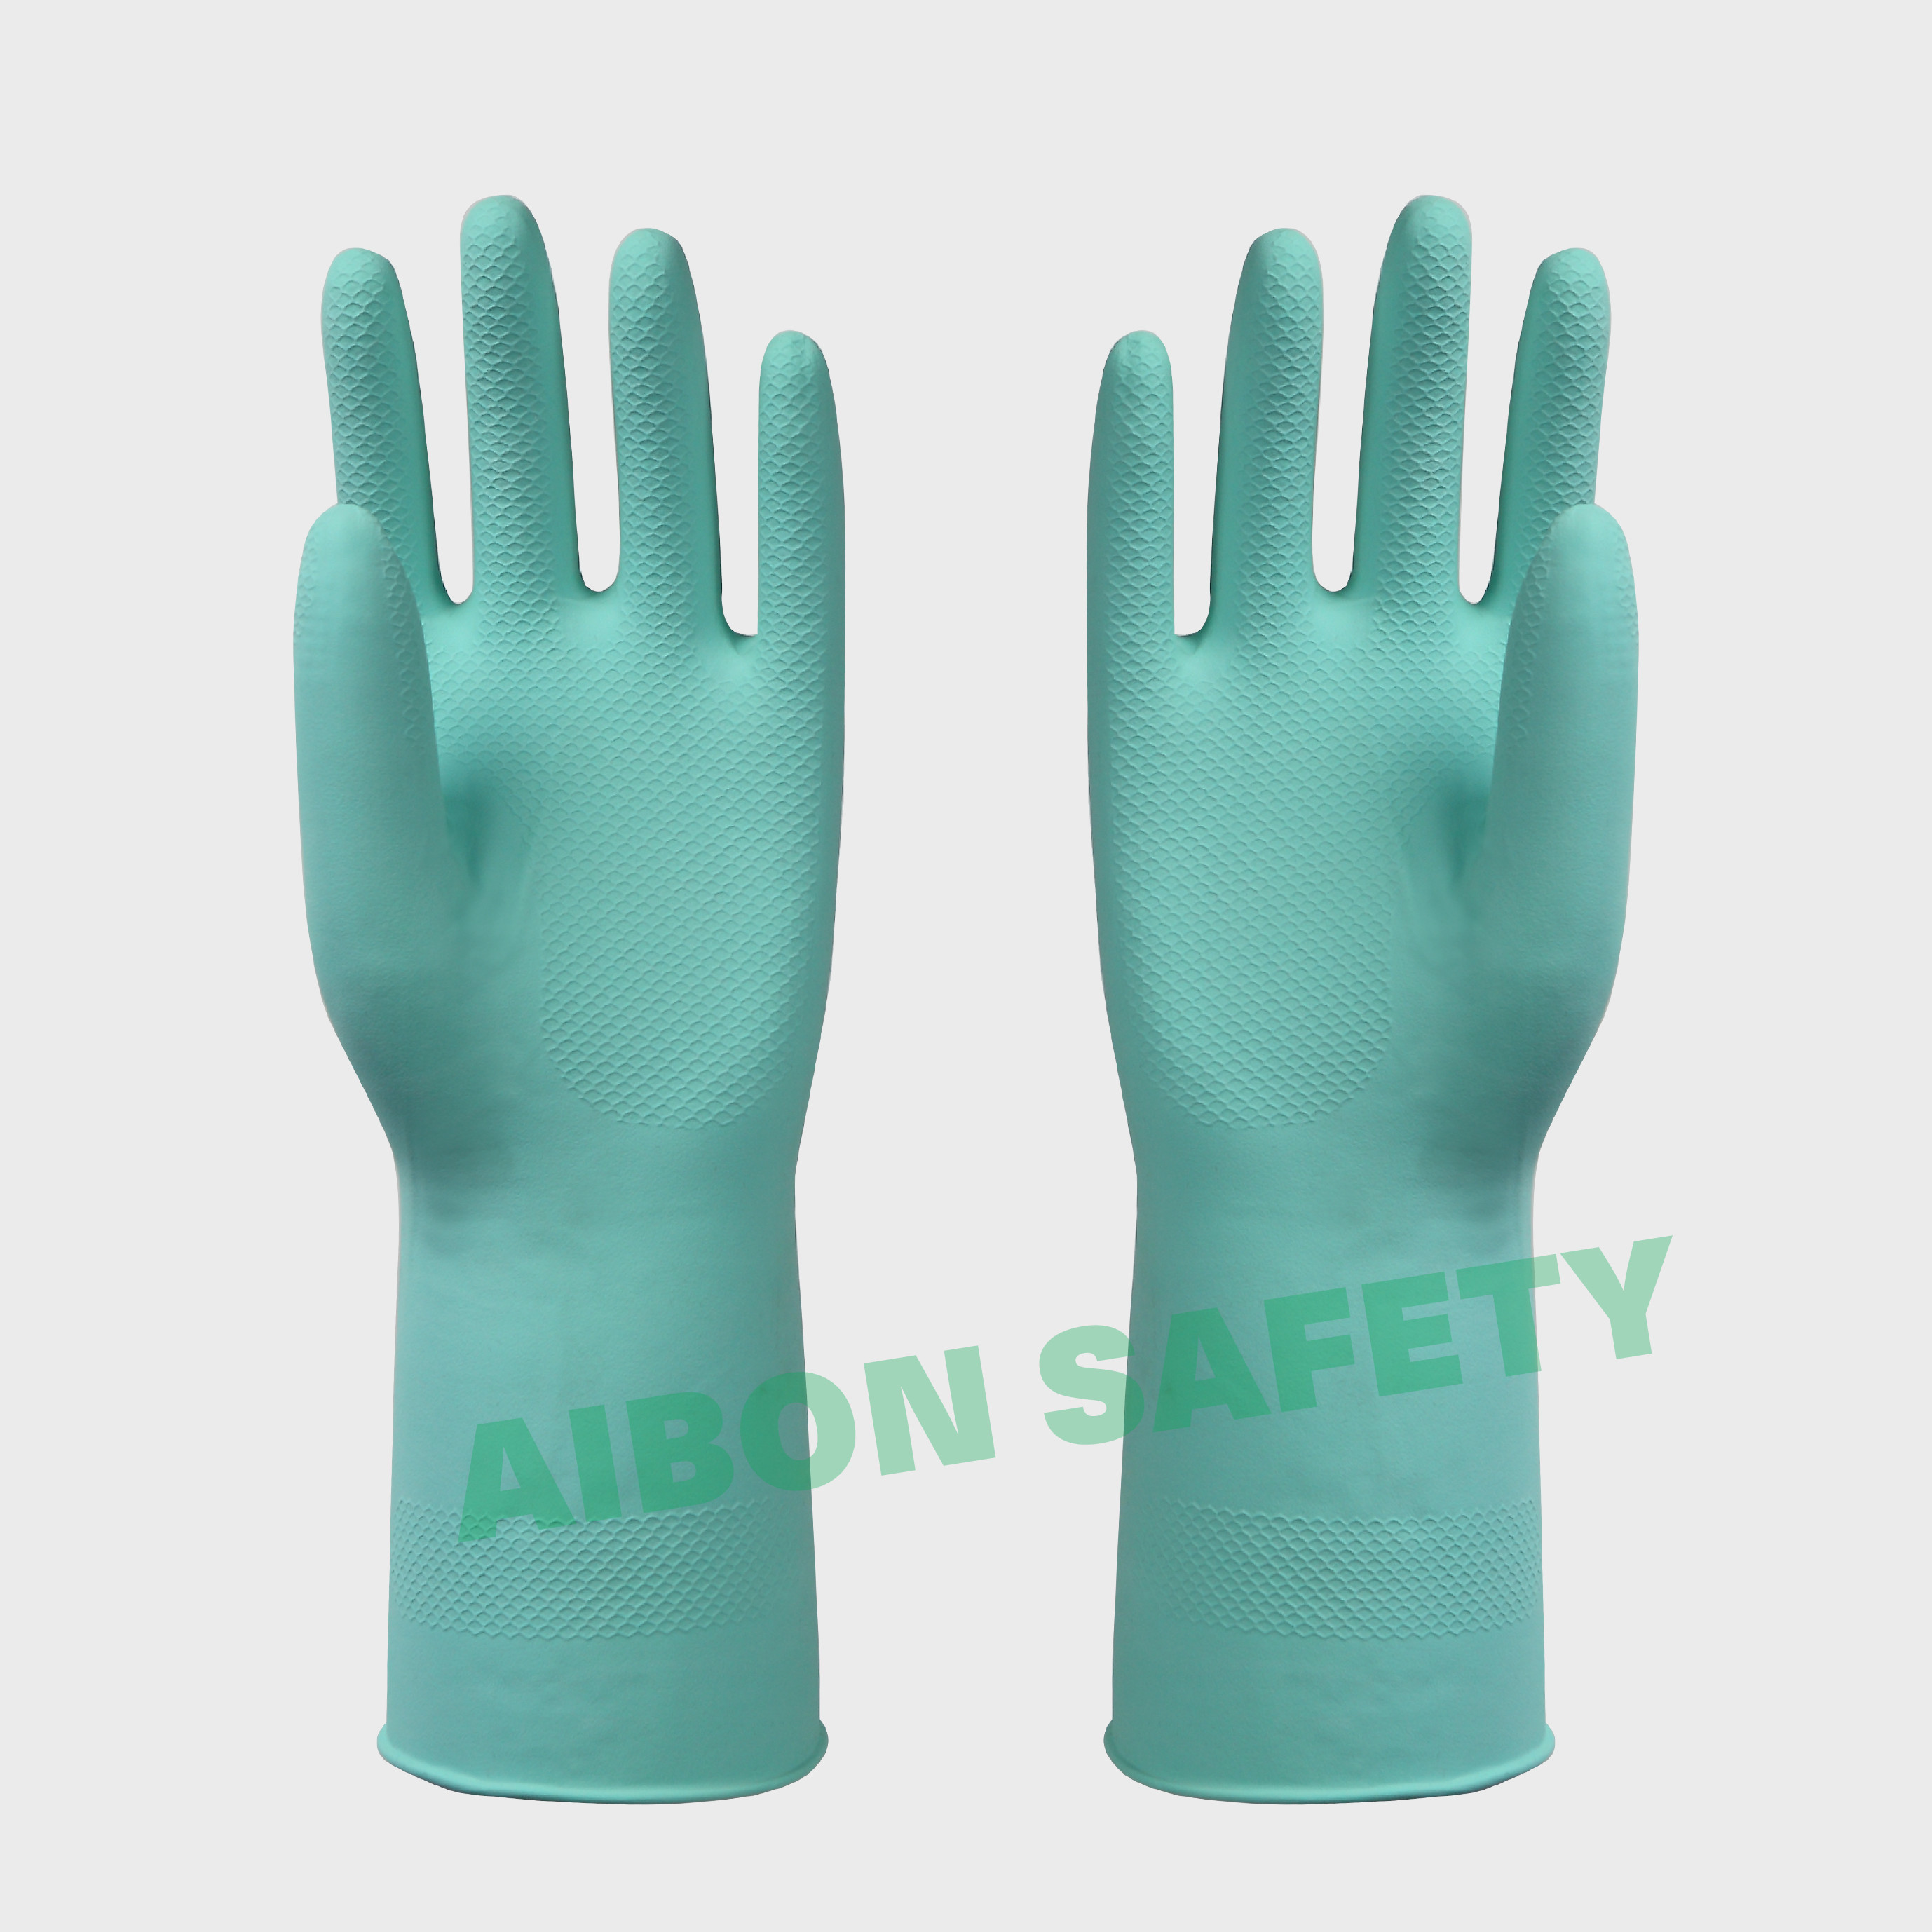 flocklined cotton household rubber glove